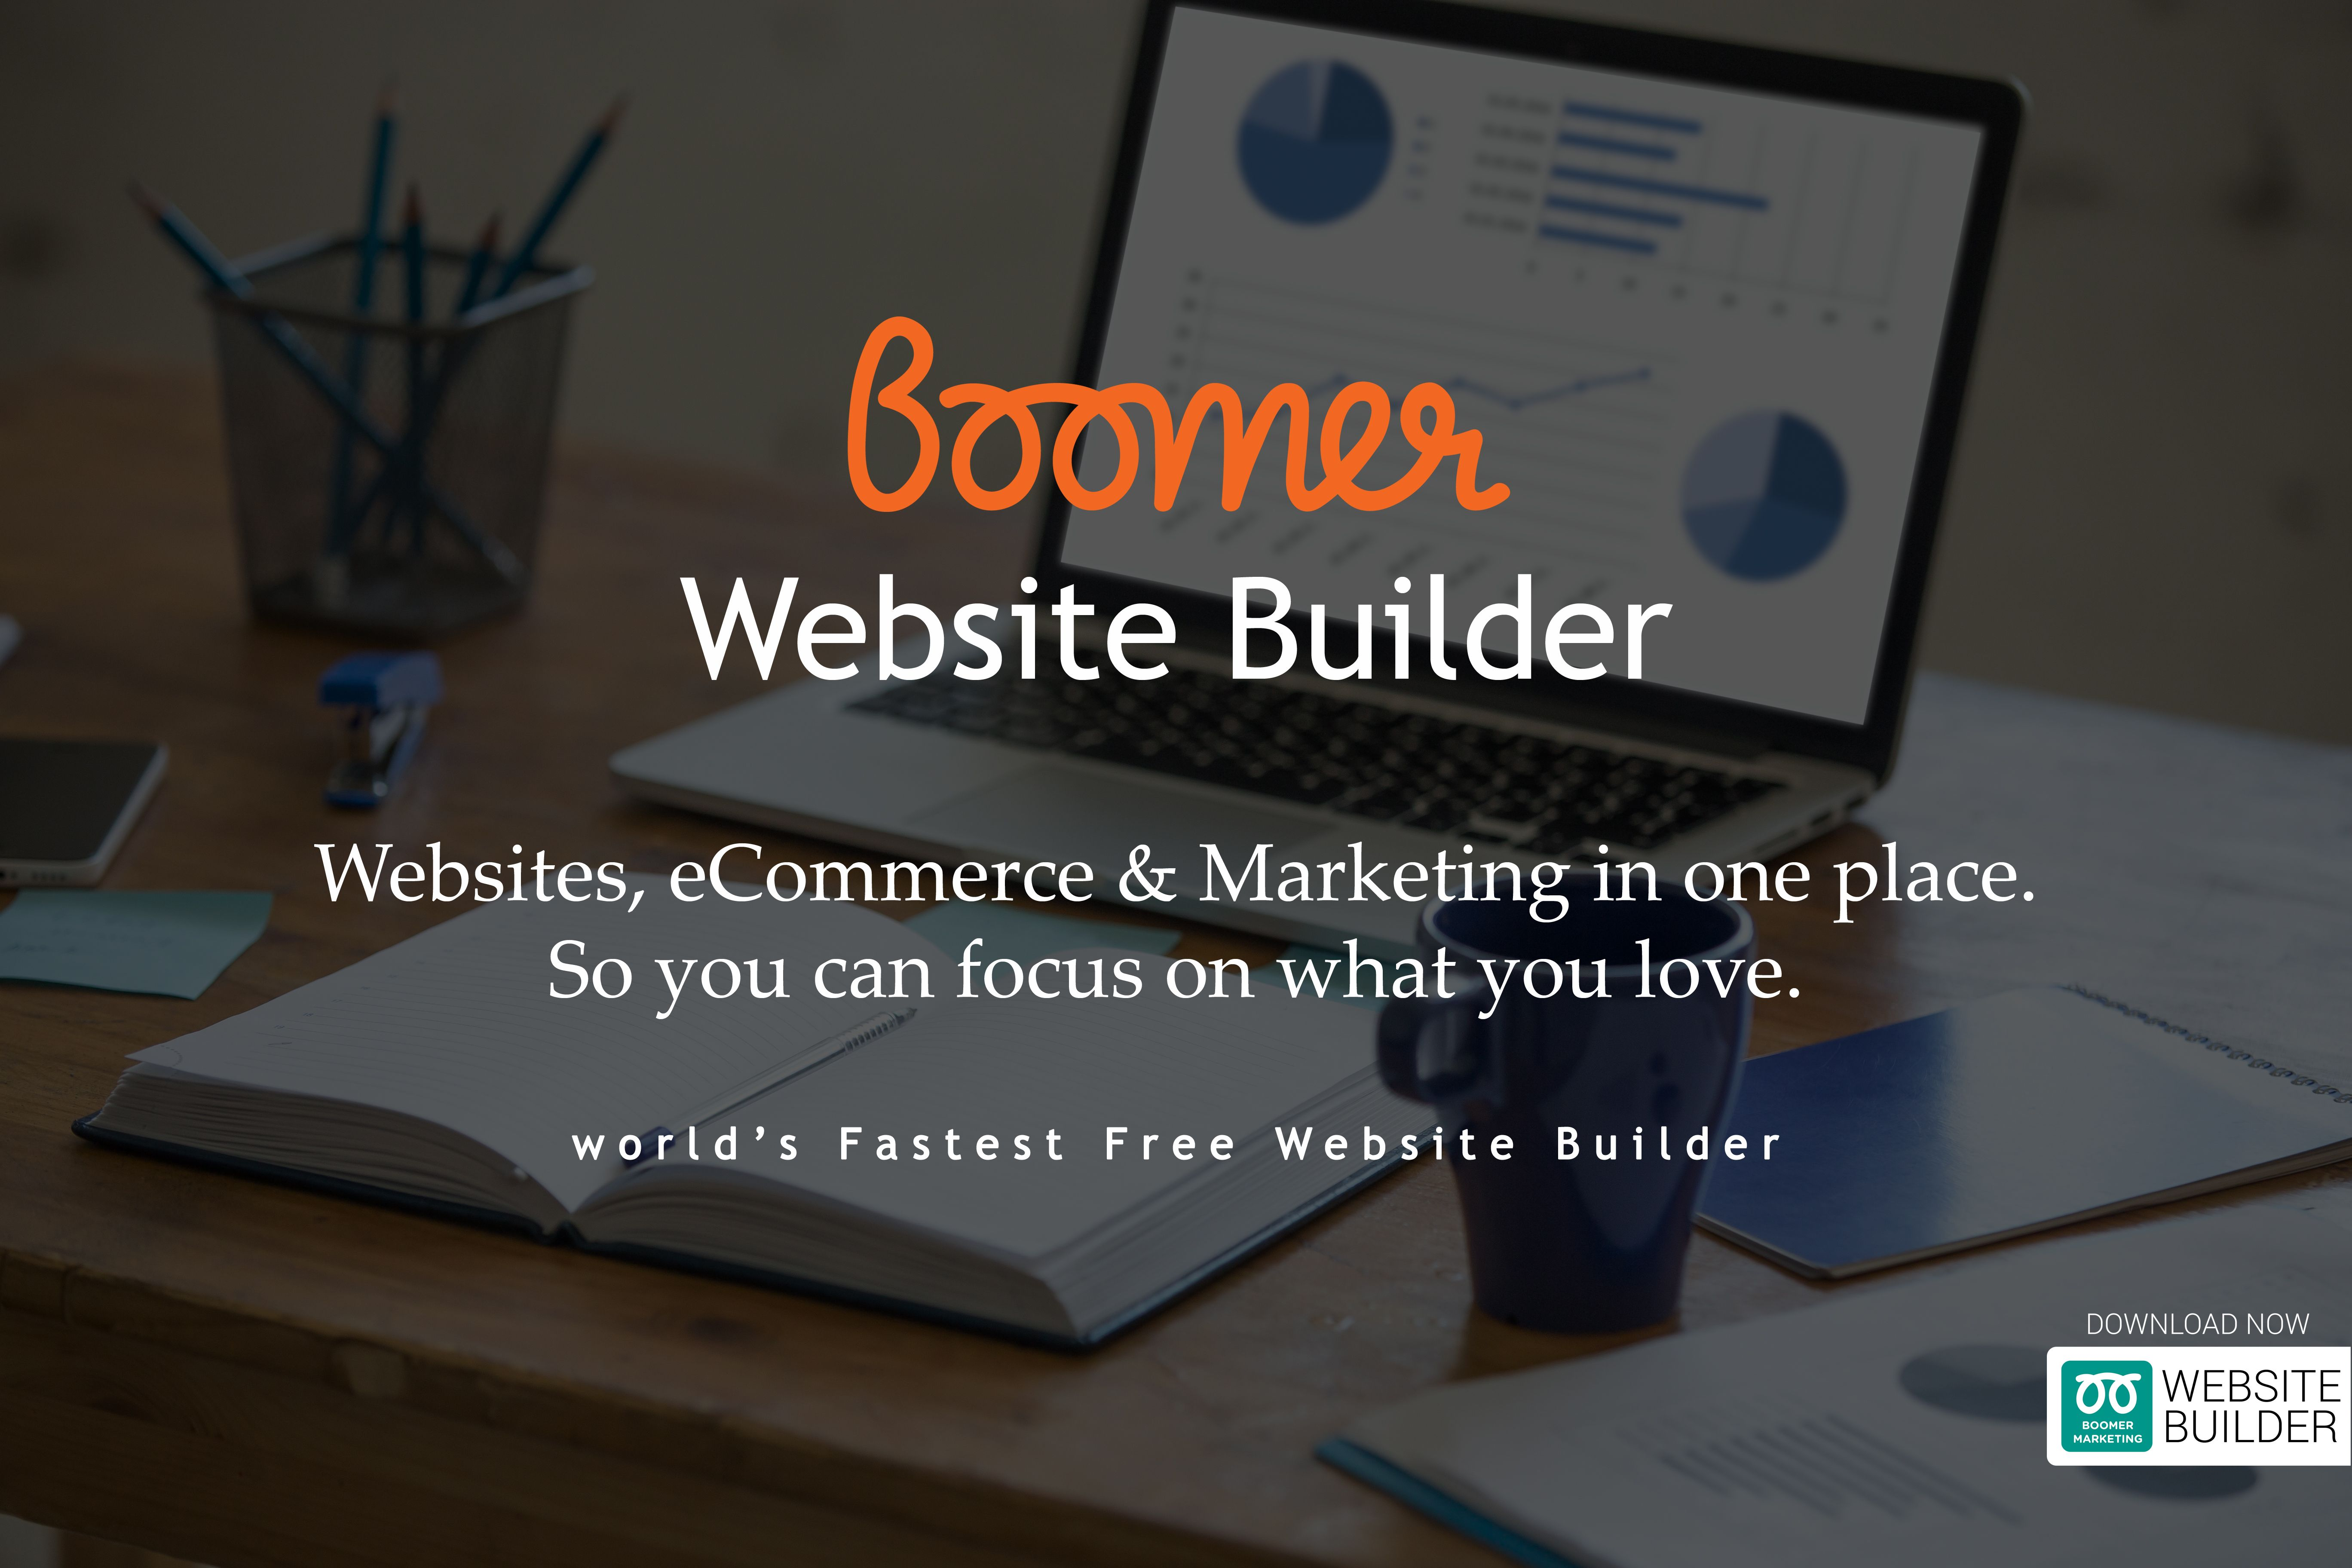 We take care of your Websites and Marketing. So